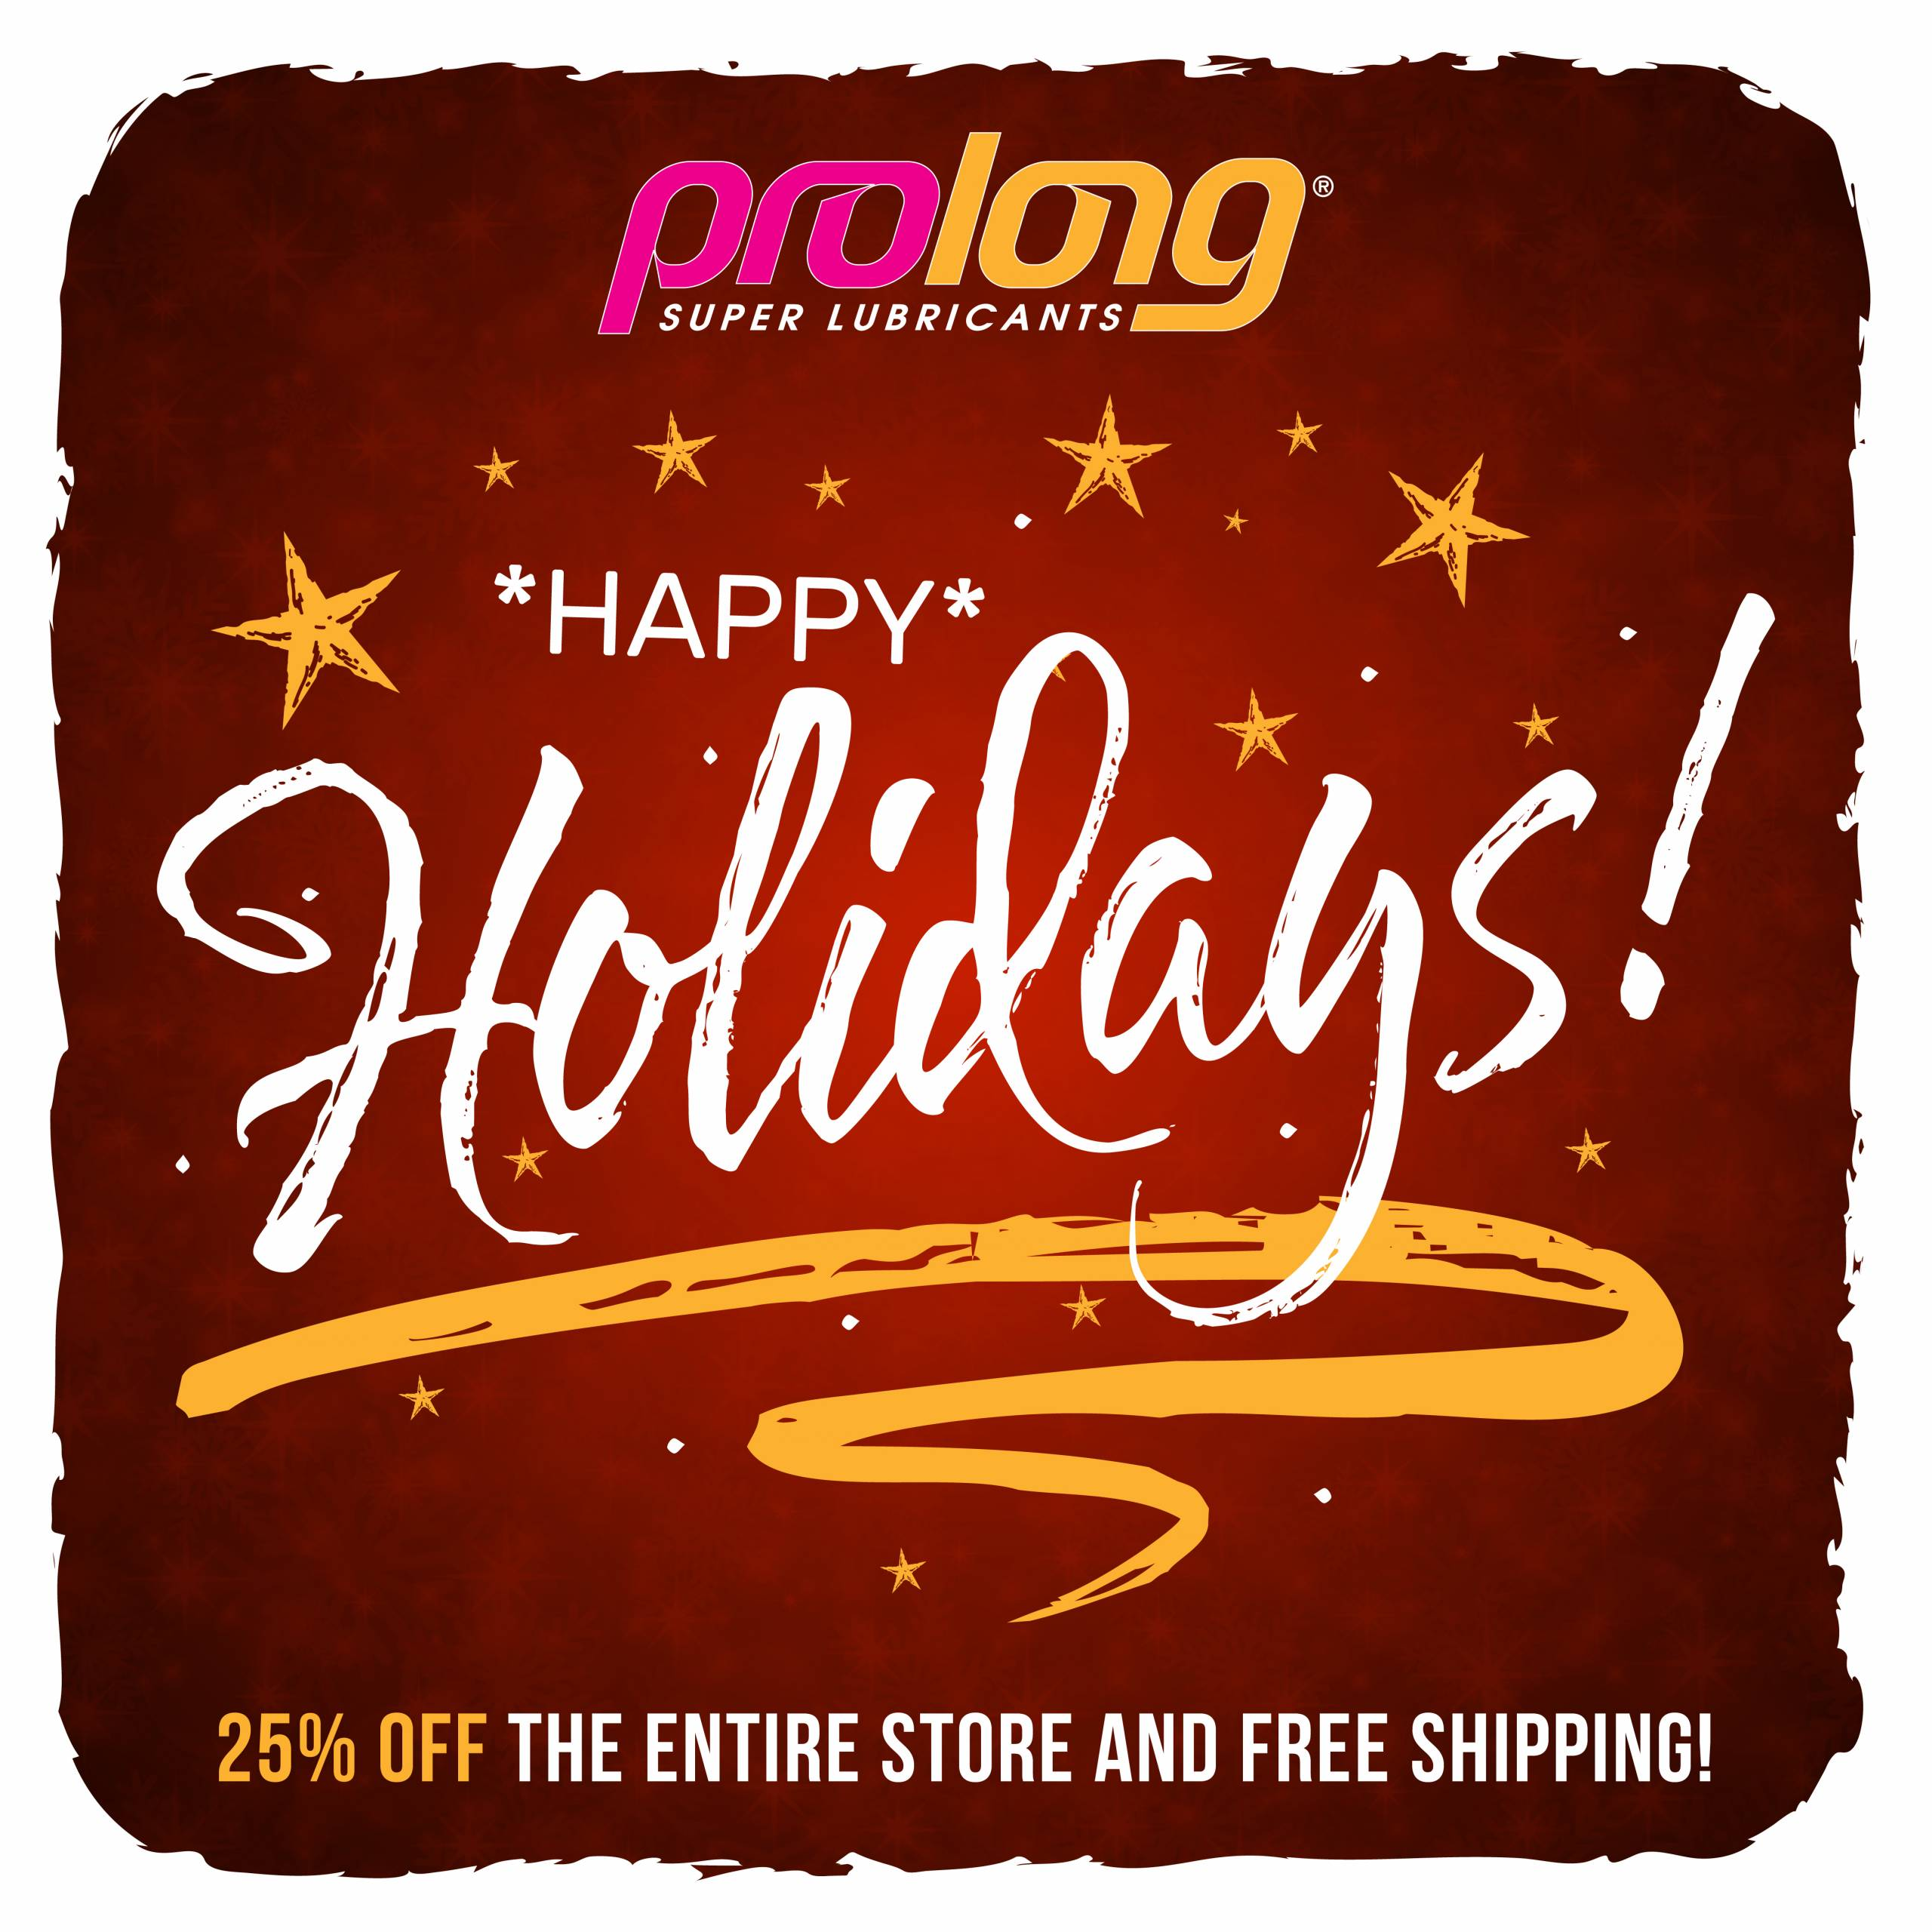 Celebrate Cyber Monday with Prolong